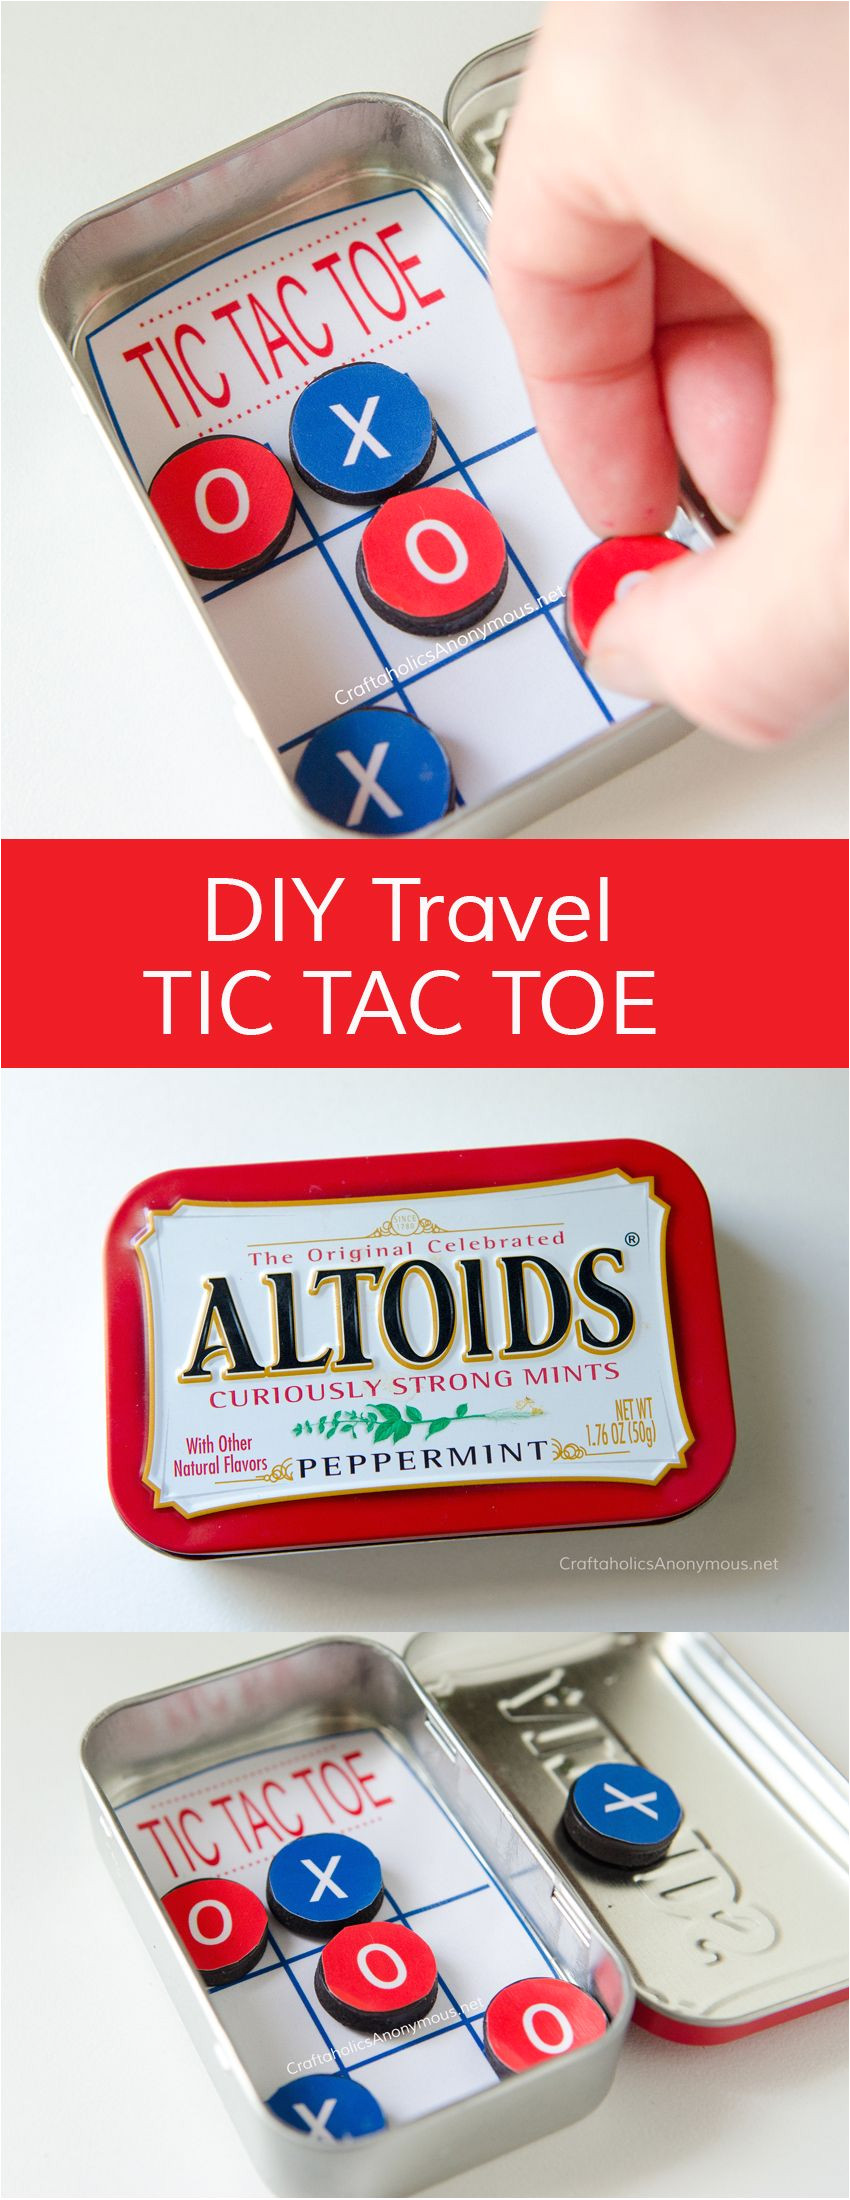 How to Make A Tic Tac toe toilet Paper Holder Diy Pocket Tic Tac toe Game with Printable Ultimate Diy Board